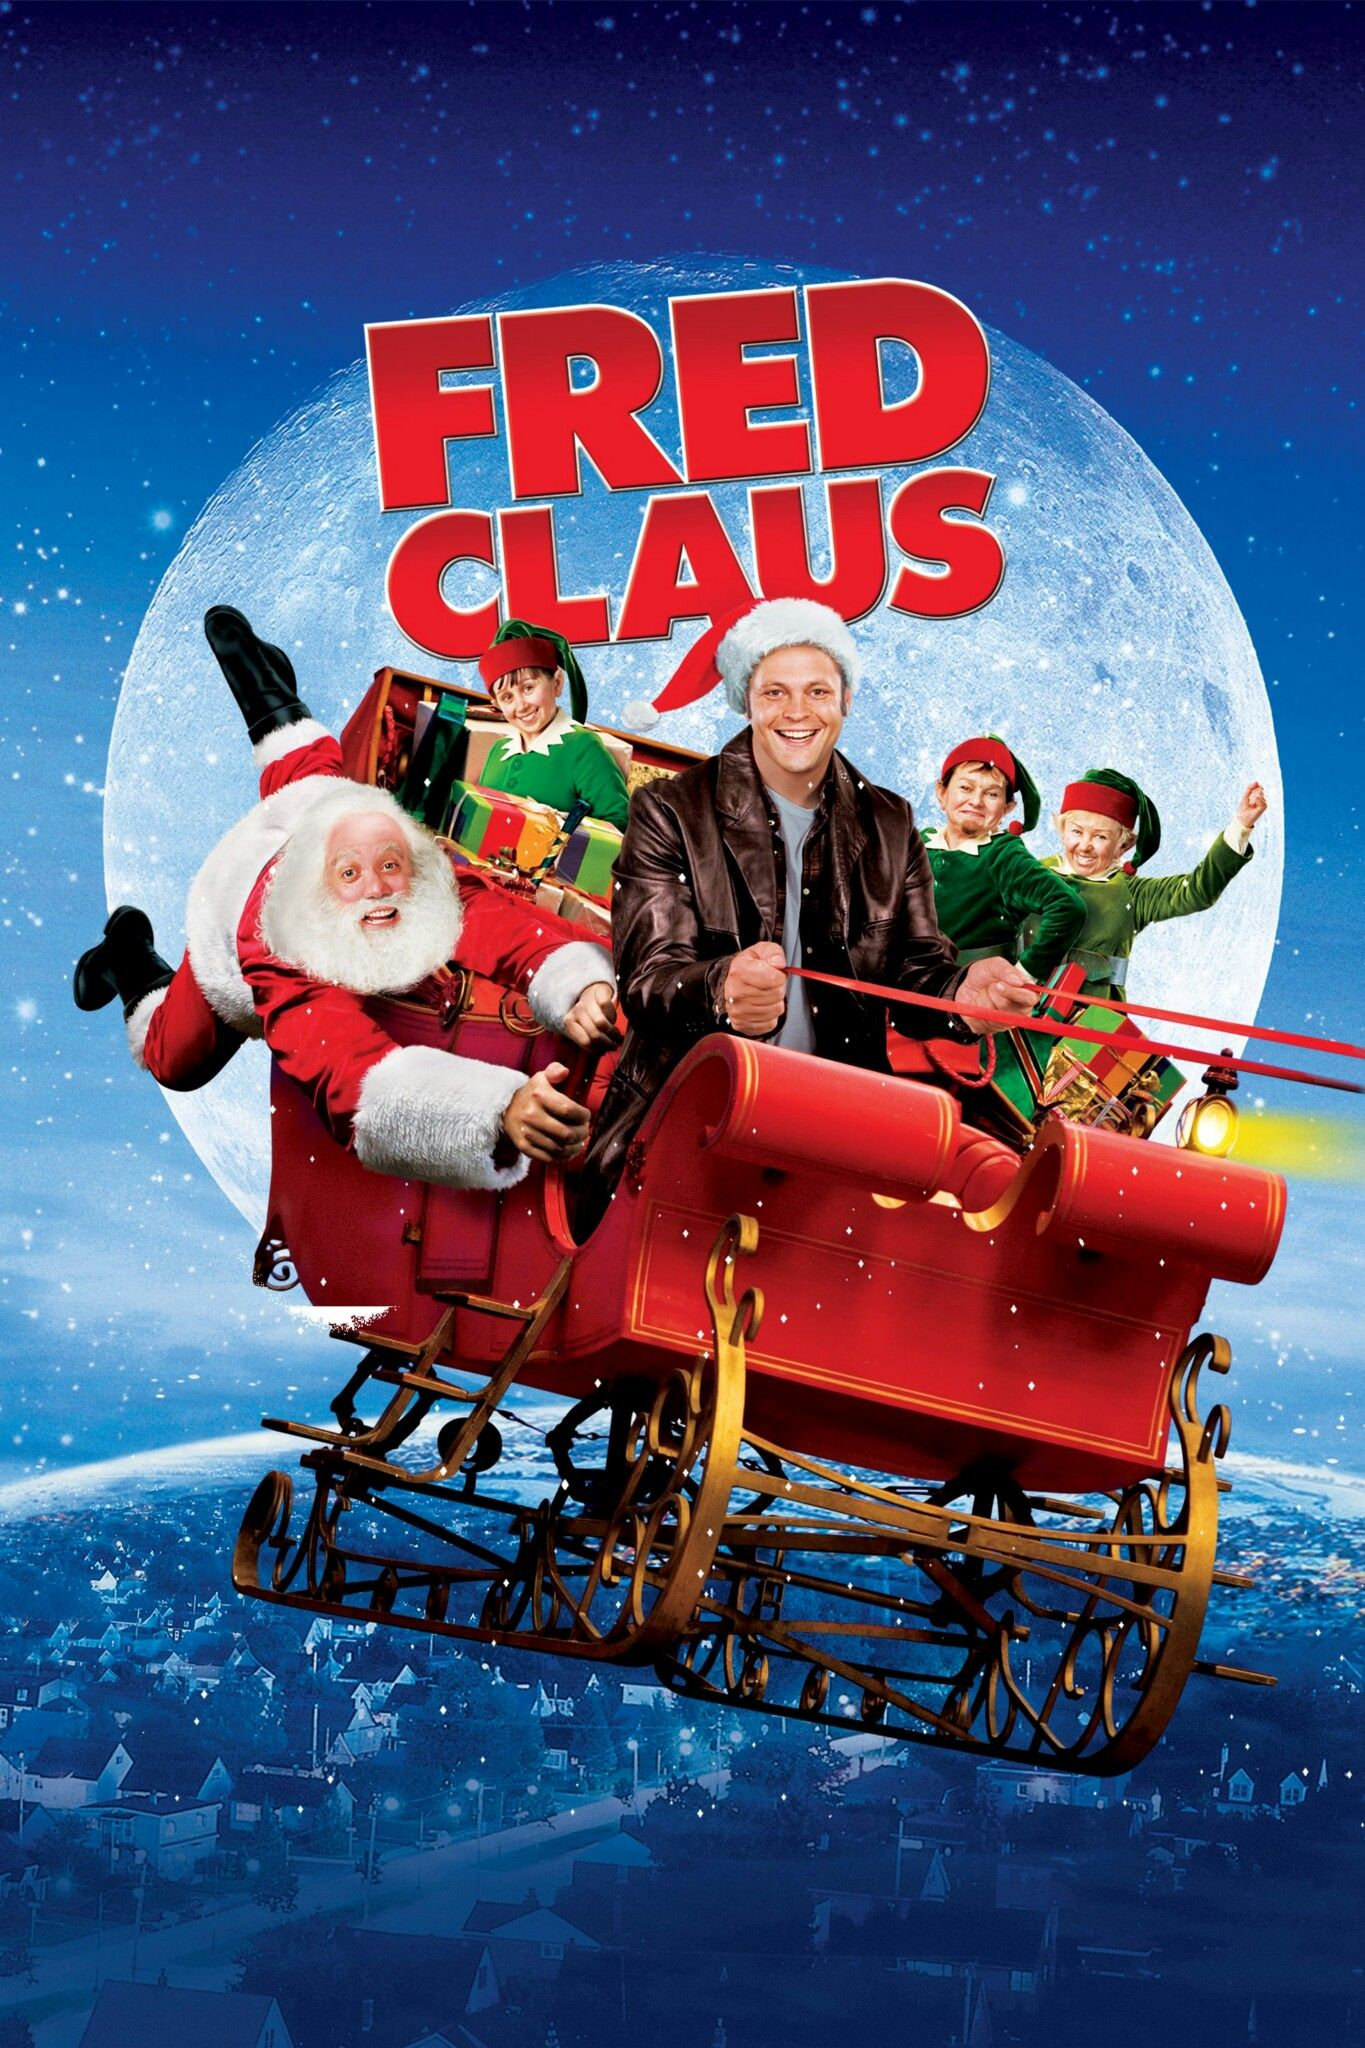 Fred Claus movie poster Christmas Movie Posters & Artwork